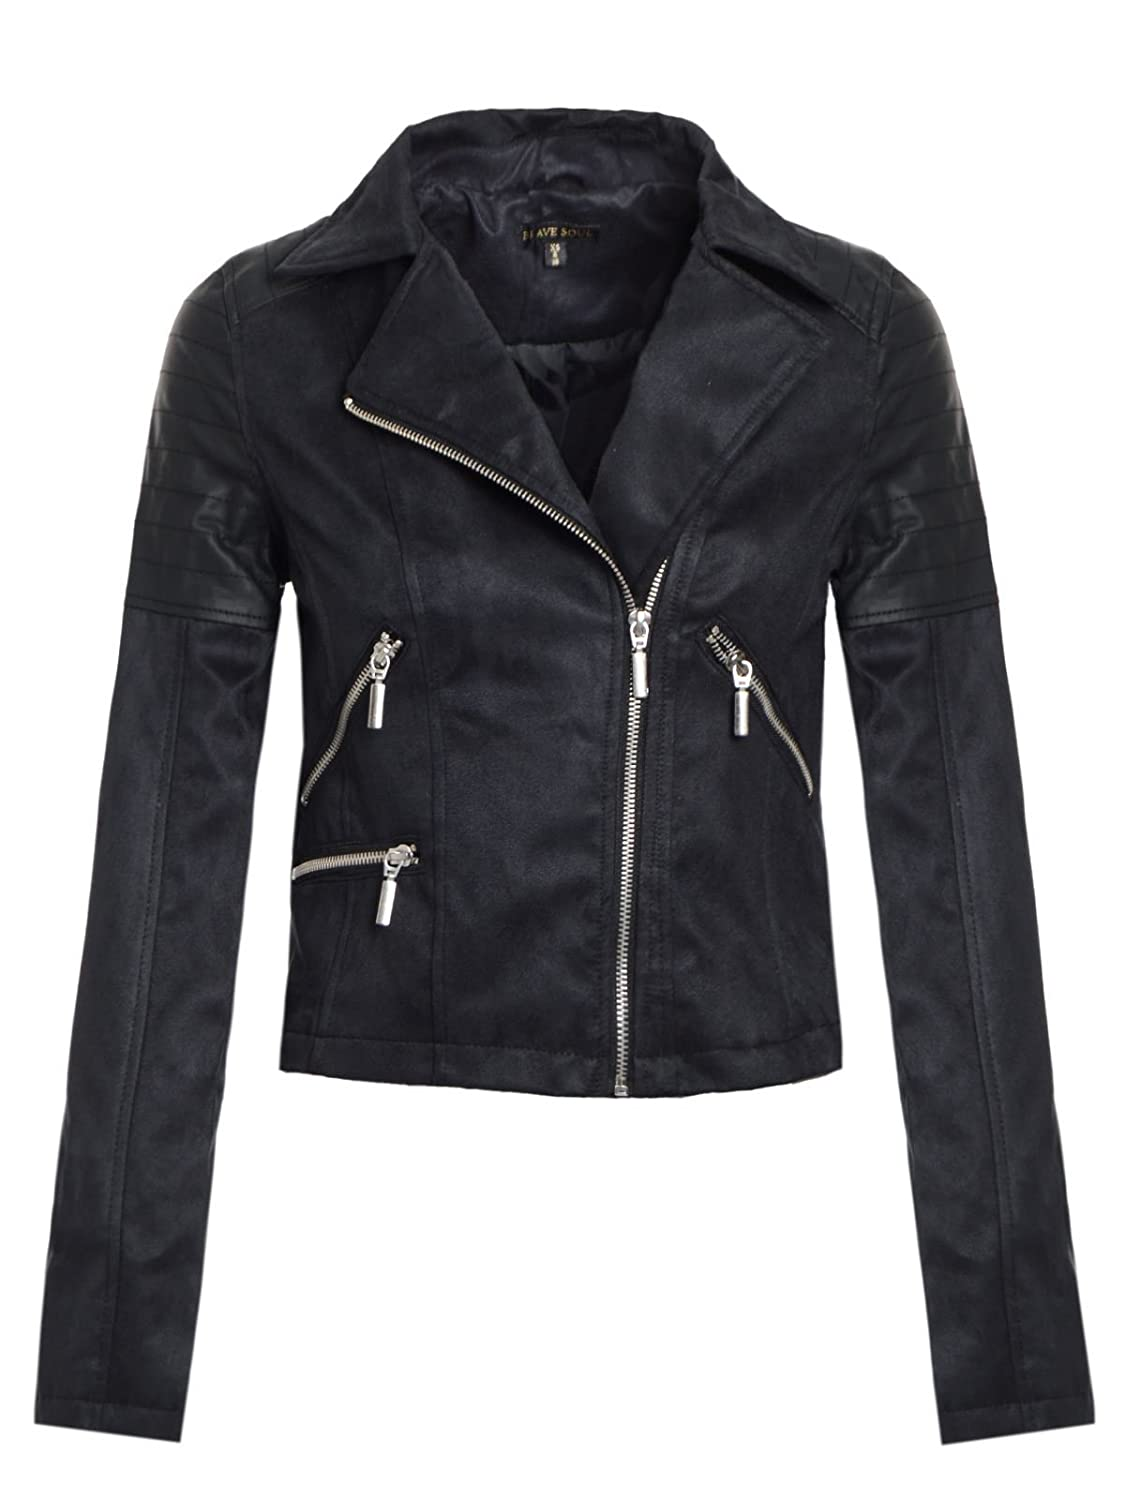 51ab564ebff3 BRAVE SOUL WOMENS PU PVC LADIES FAUX SUEDE ZIP DETAIL BIKER JACKET BLACK  12  Amazon.co.uk  Clothing